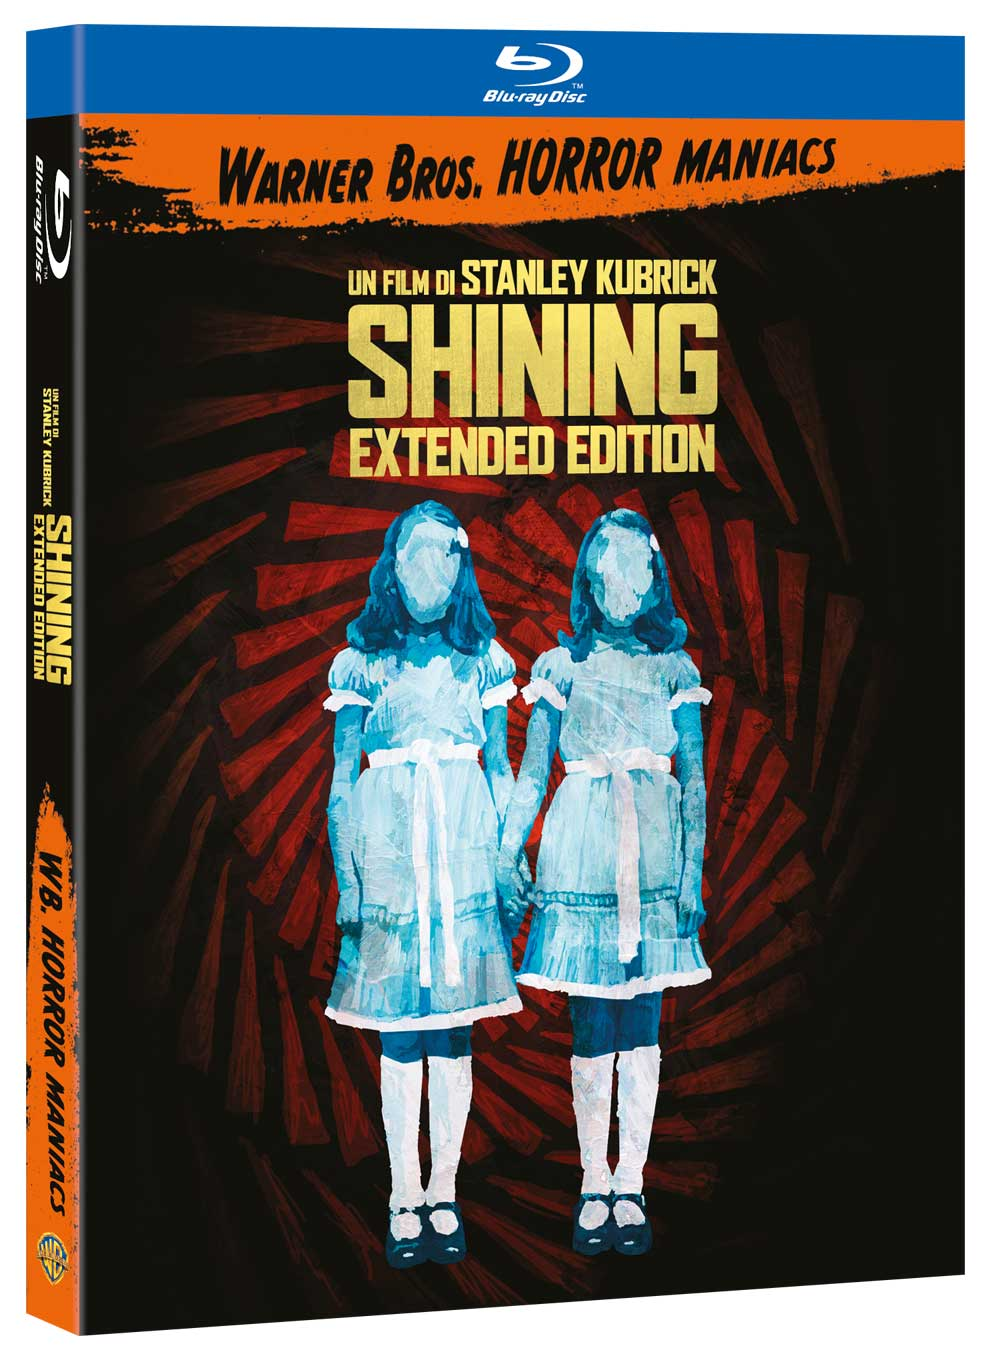 SHINING (EXTENDED EDITION) (BLU-RAY)